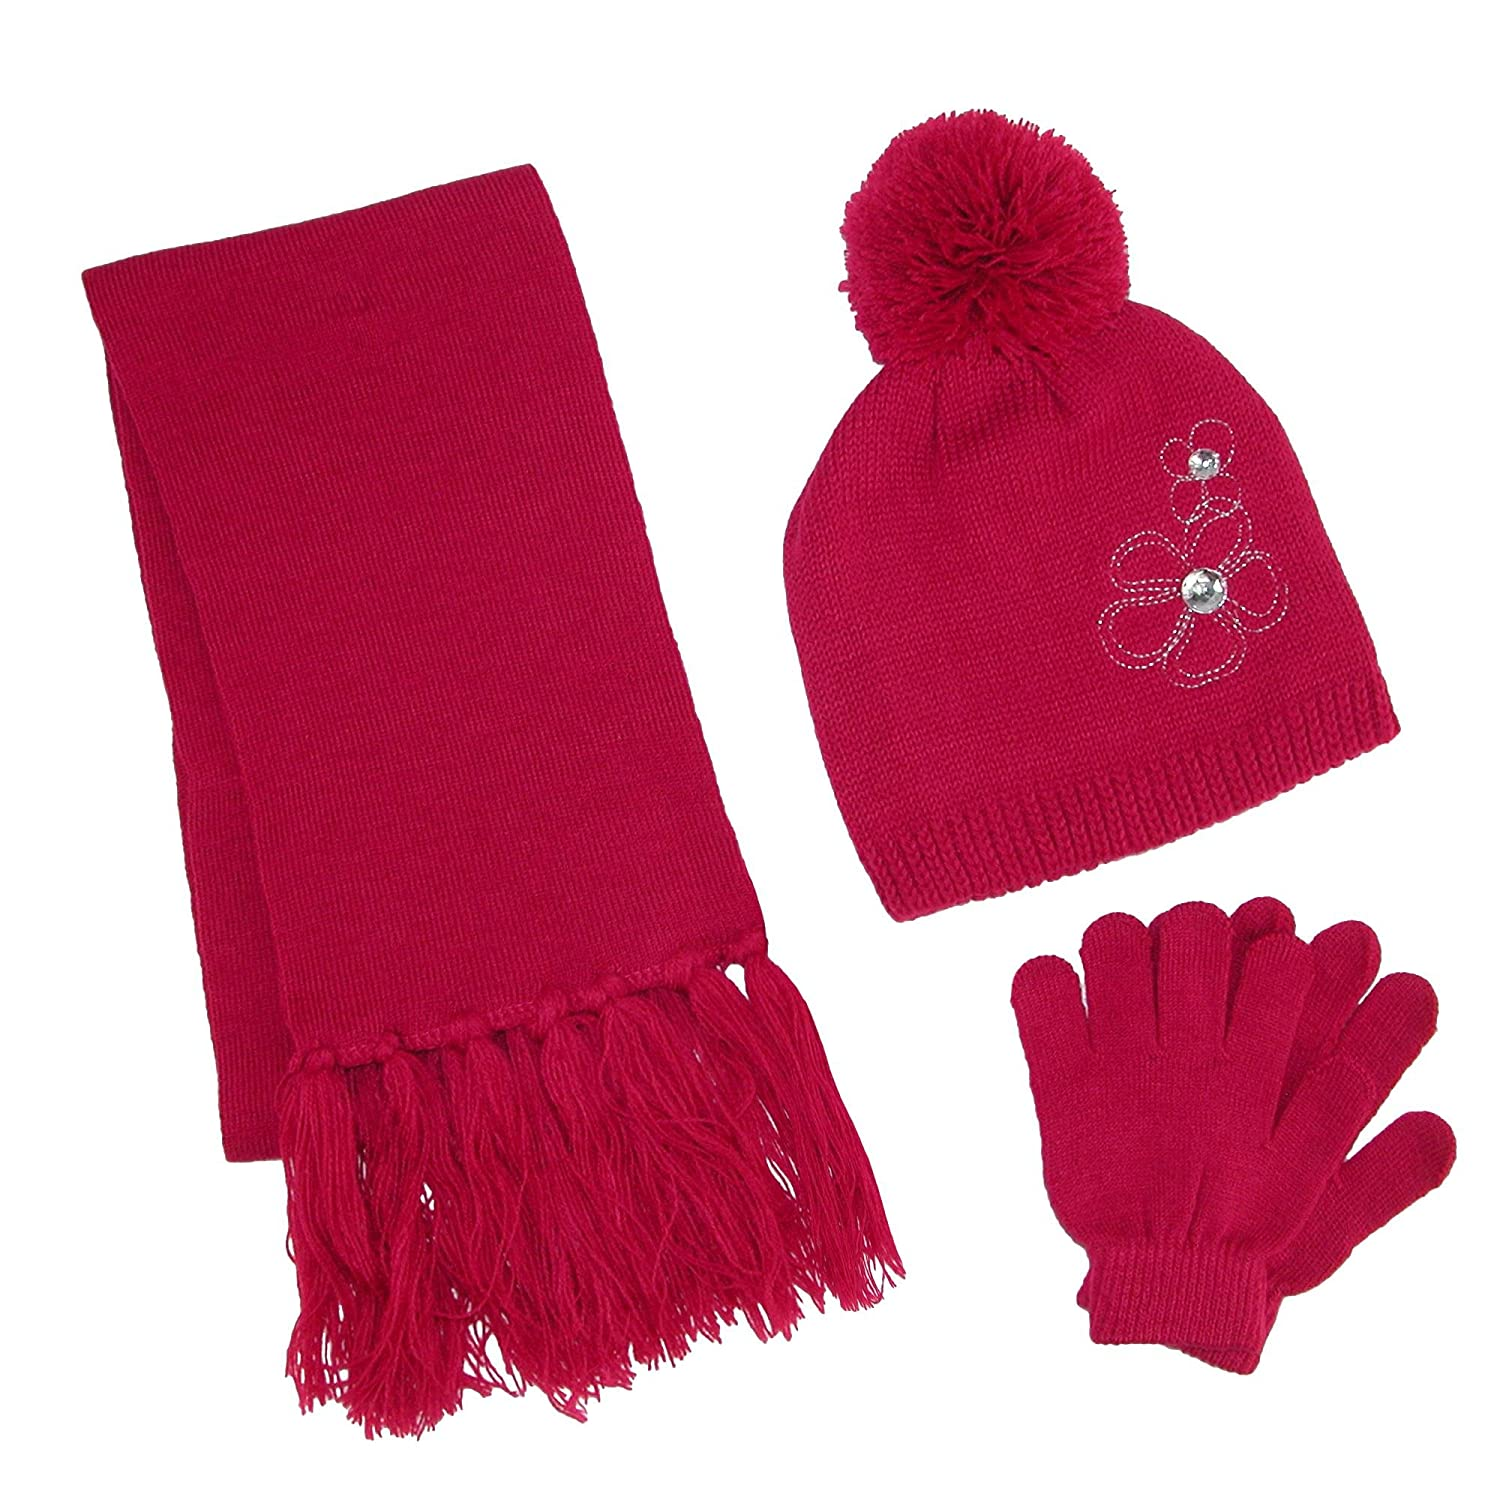 ClimaZer0 Girl's Flower Beanie Hat and Scarf Winter Set, Dark Pink